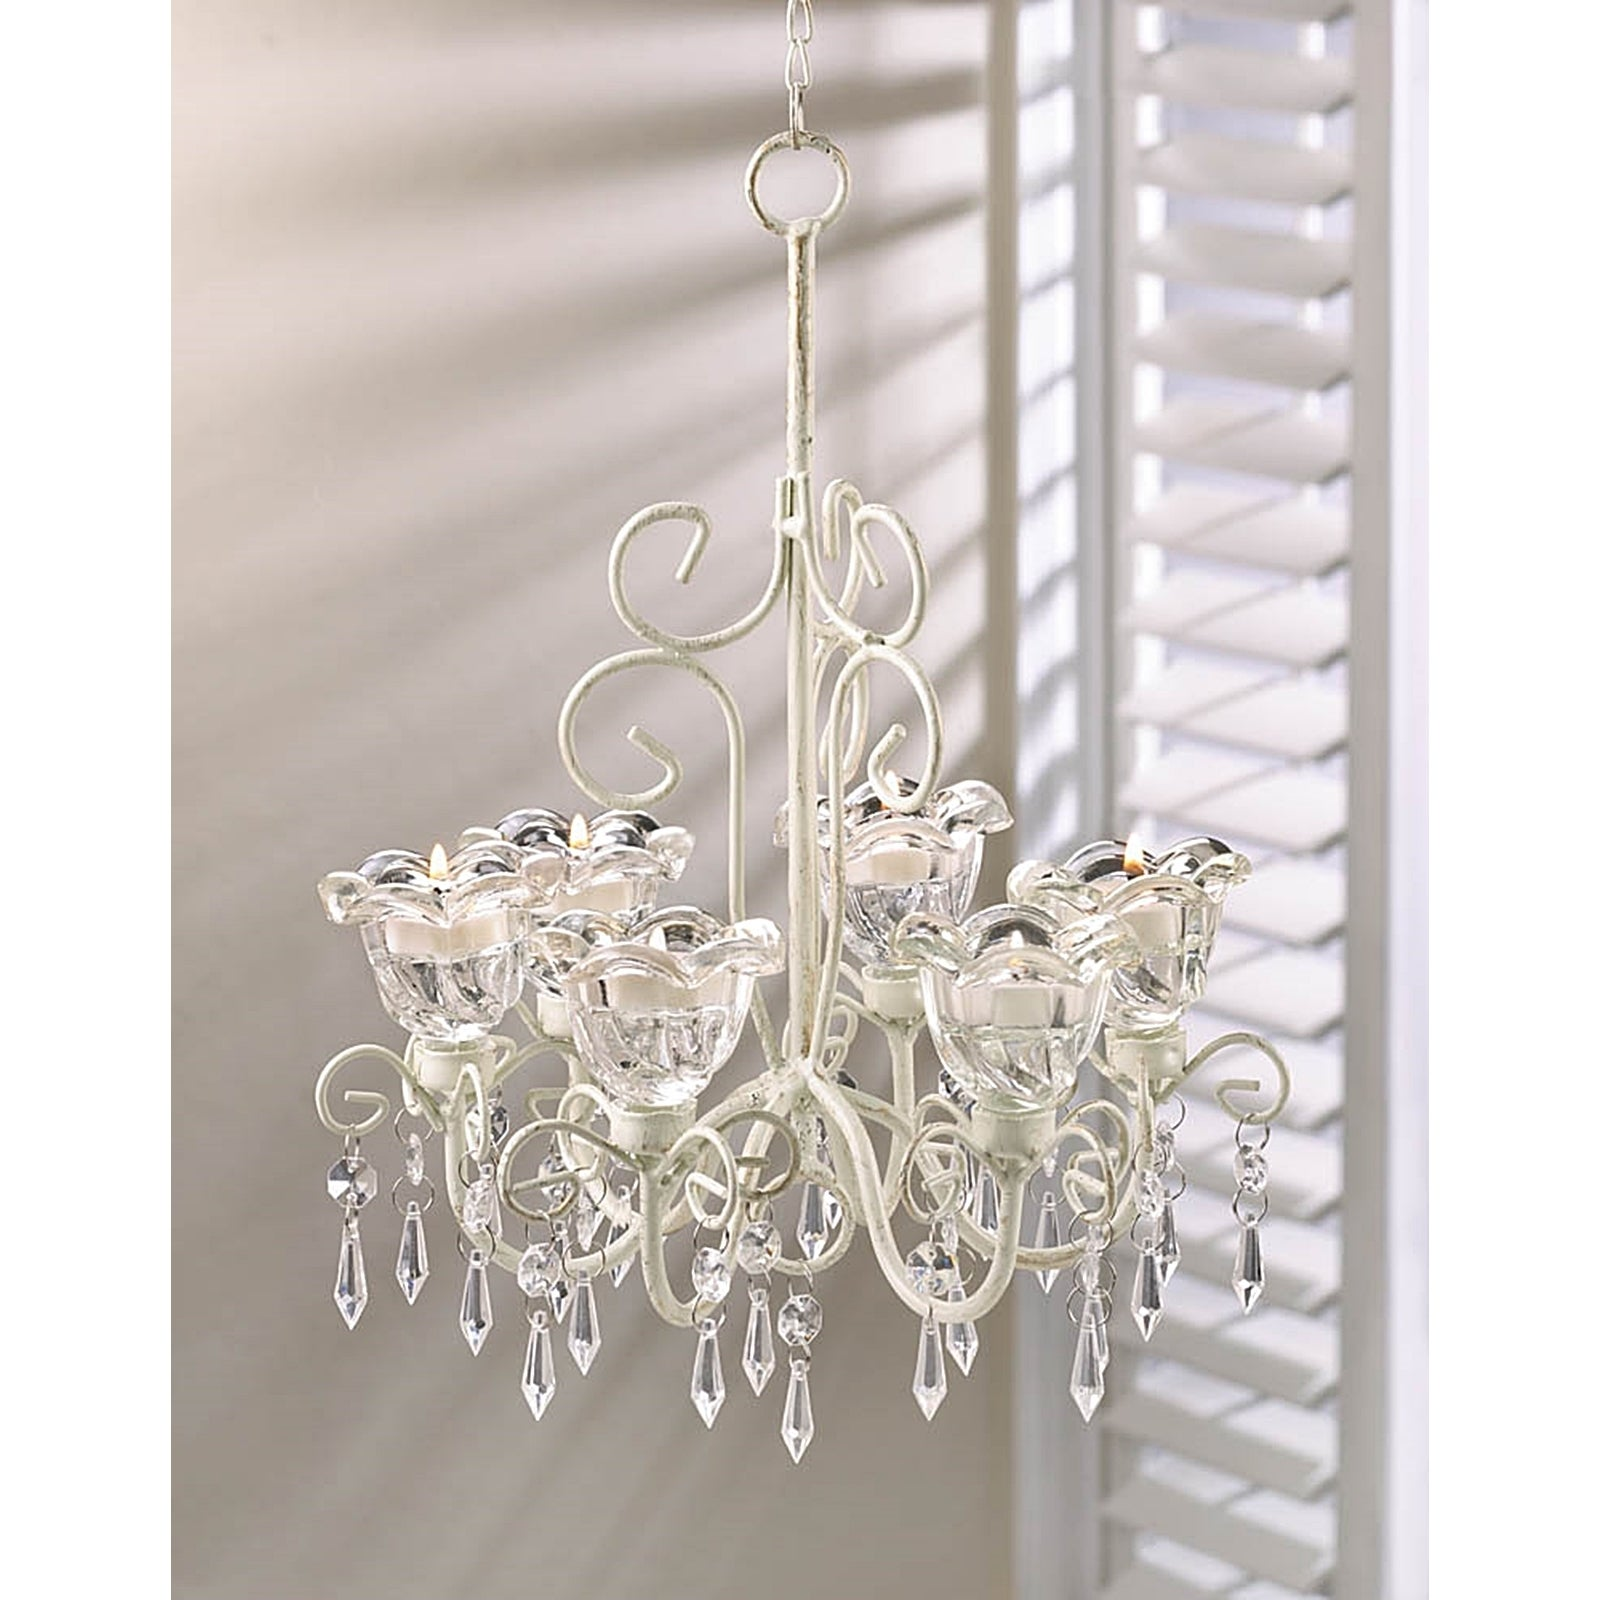 Elaborate Crystal and Candle Hanging Chandelier (Elaborat...